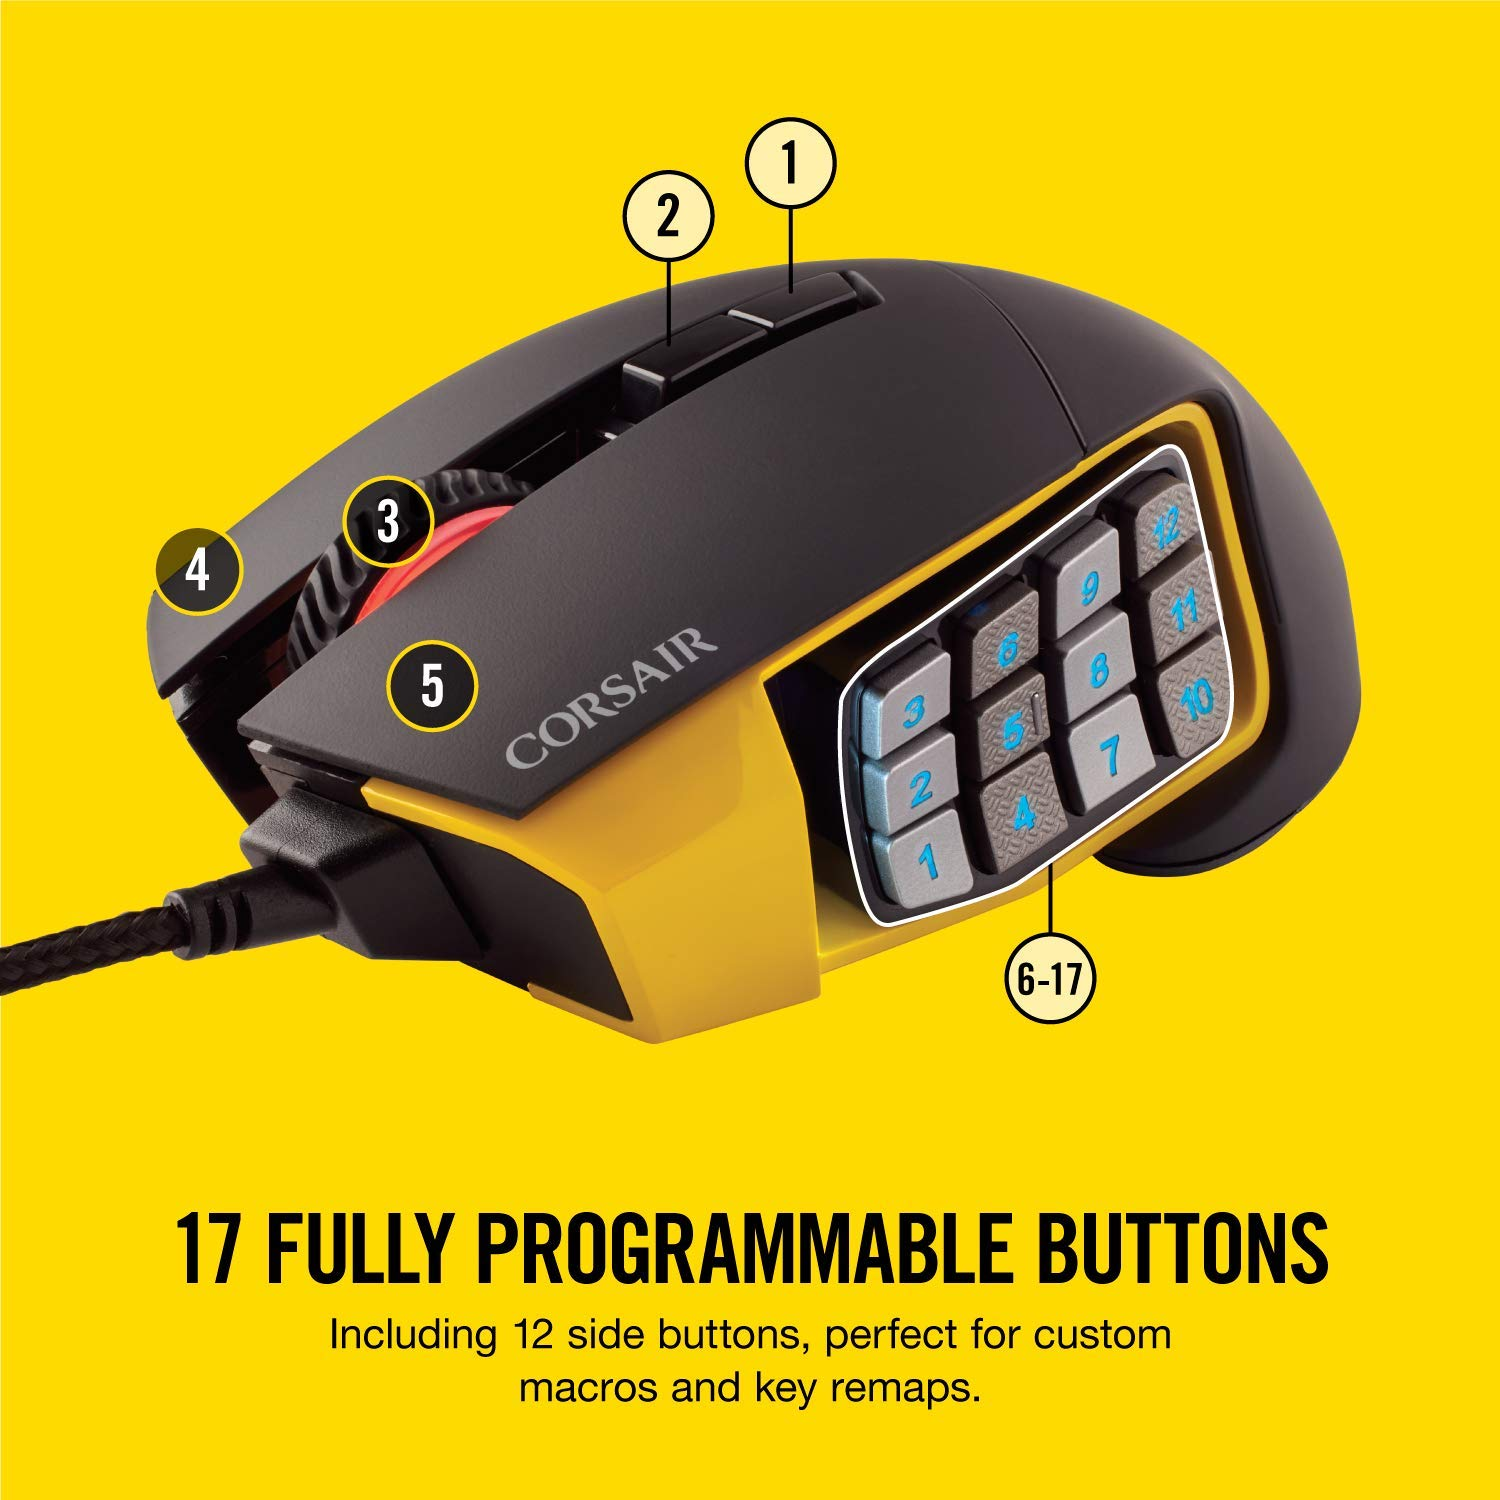 Corsair Scimitar PRO RGB Optical MMO Gaming Mouse (16000 DPI Optical  Sensor, 12 Programmable Side Buttons, 4-Zone RGB Multi-Colour Backlighting,